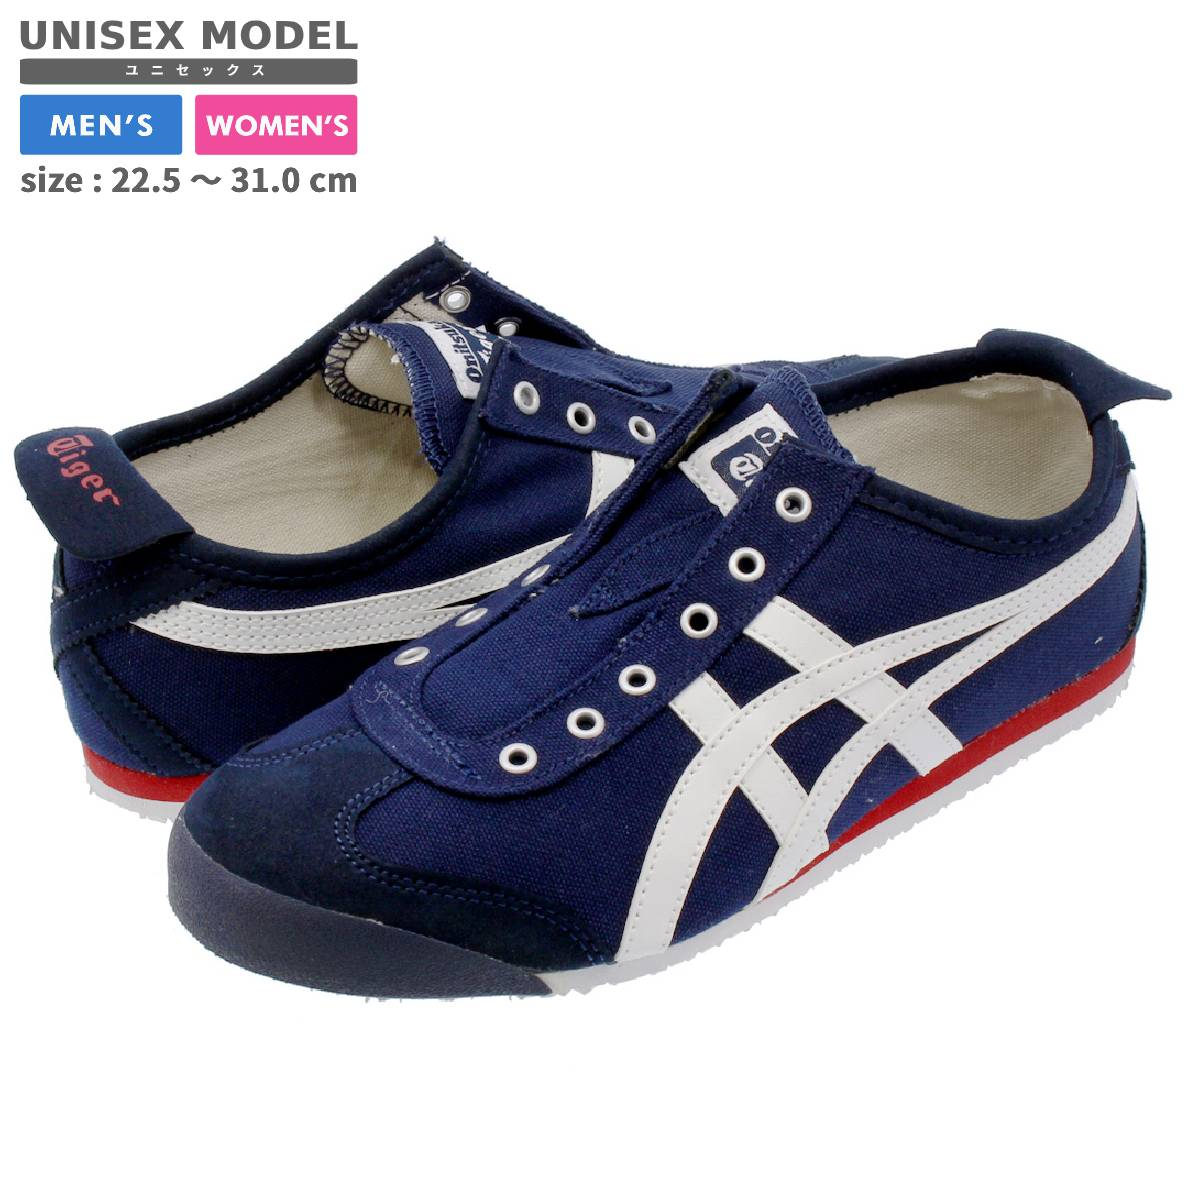 official photos 30eb0 25be1 Onitsuka Tiger MEXICO 66 SLIP-ON Onitsuka tiger Mexico 66 slip-ons NAVY/OFF  WHITE